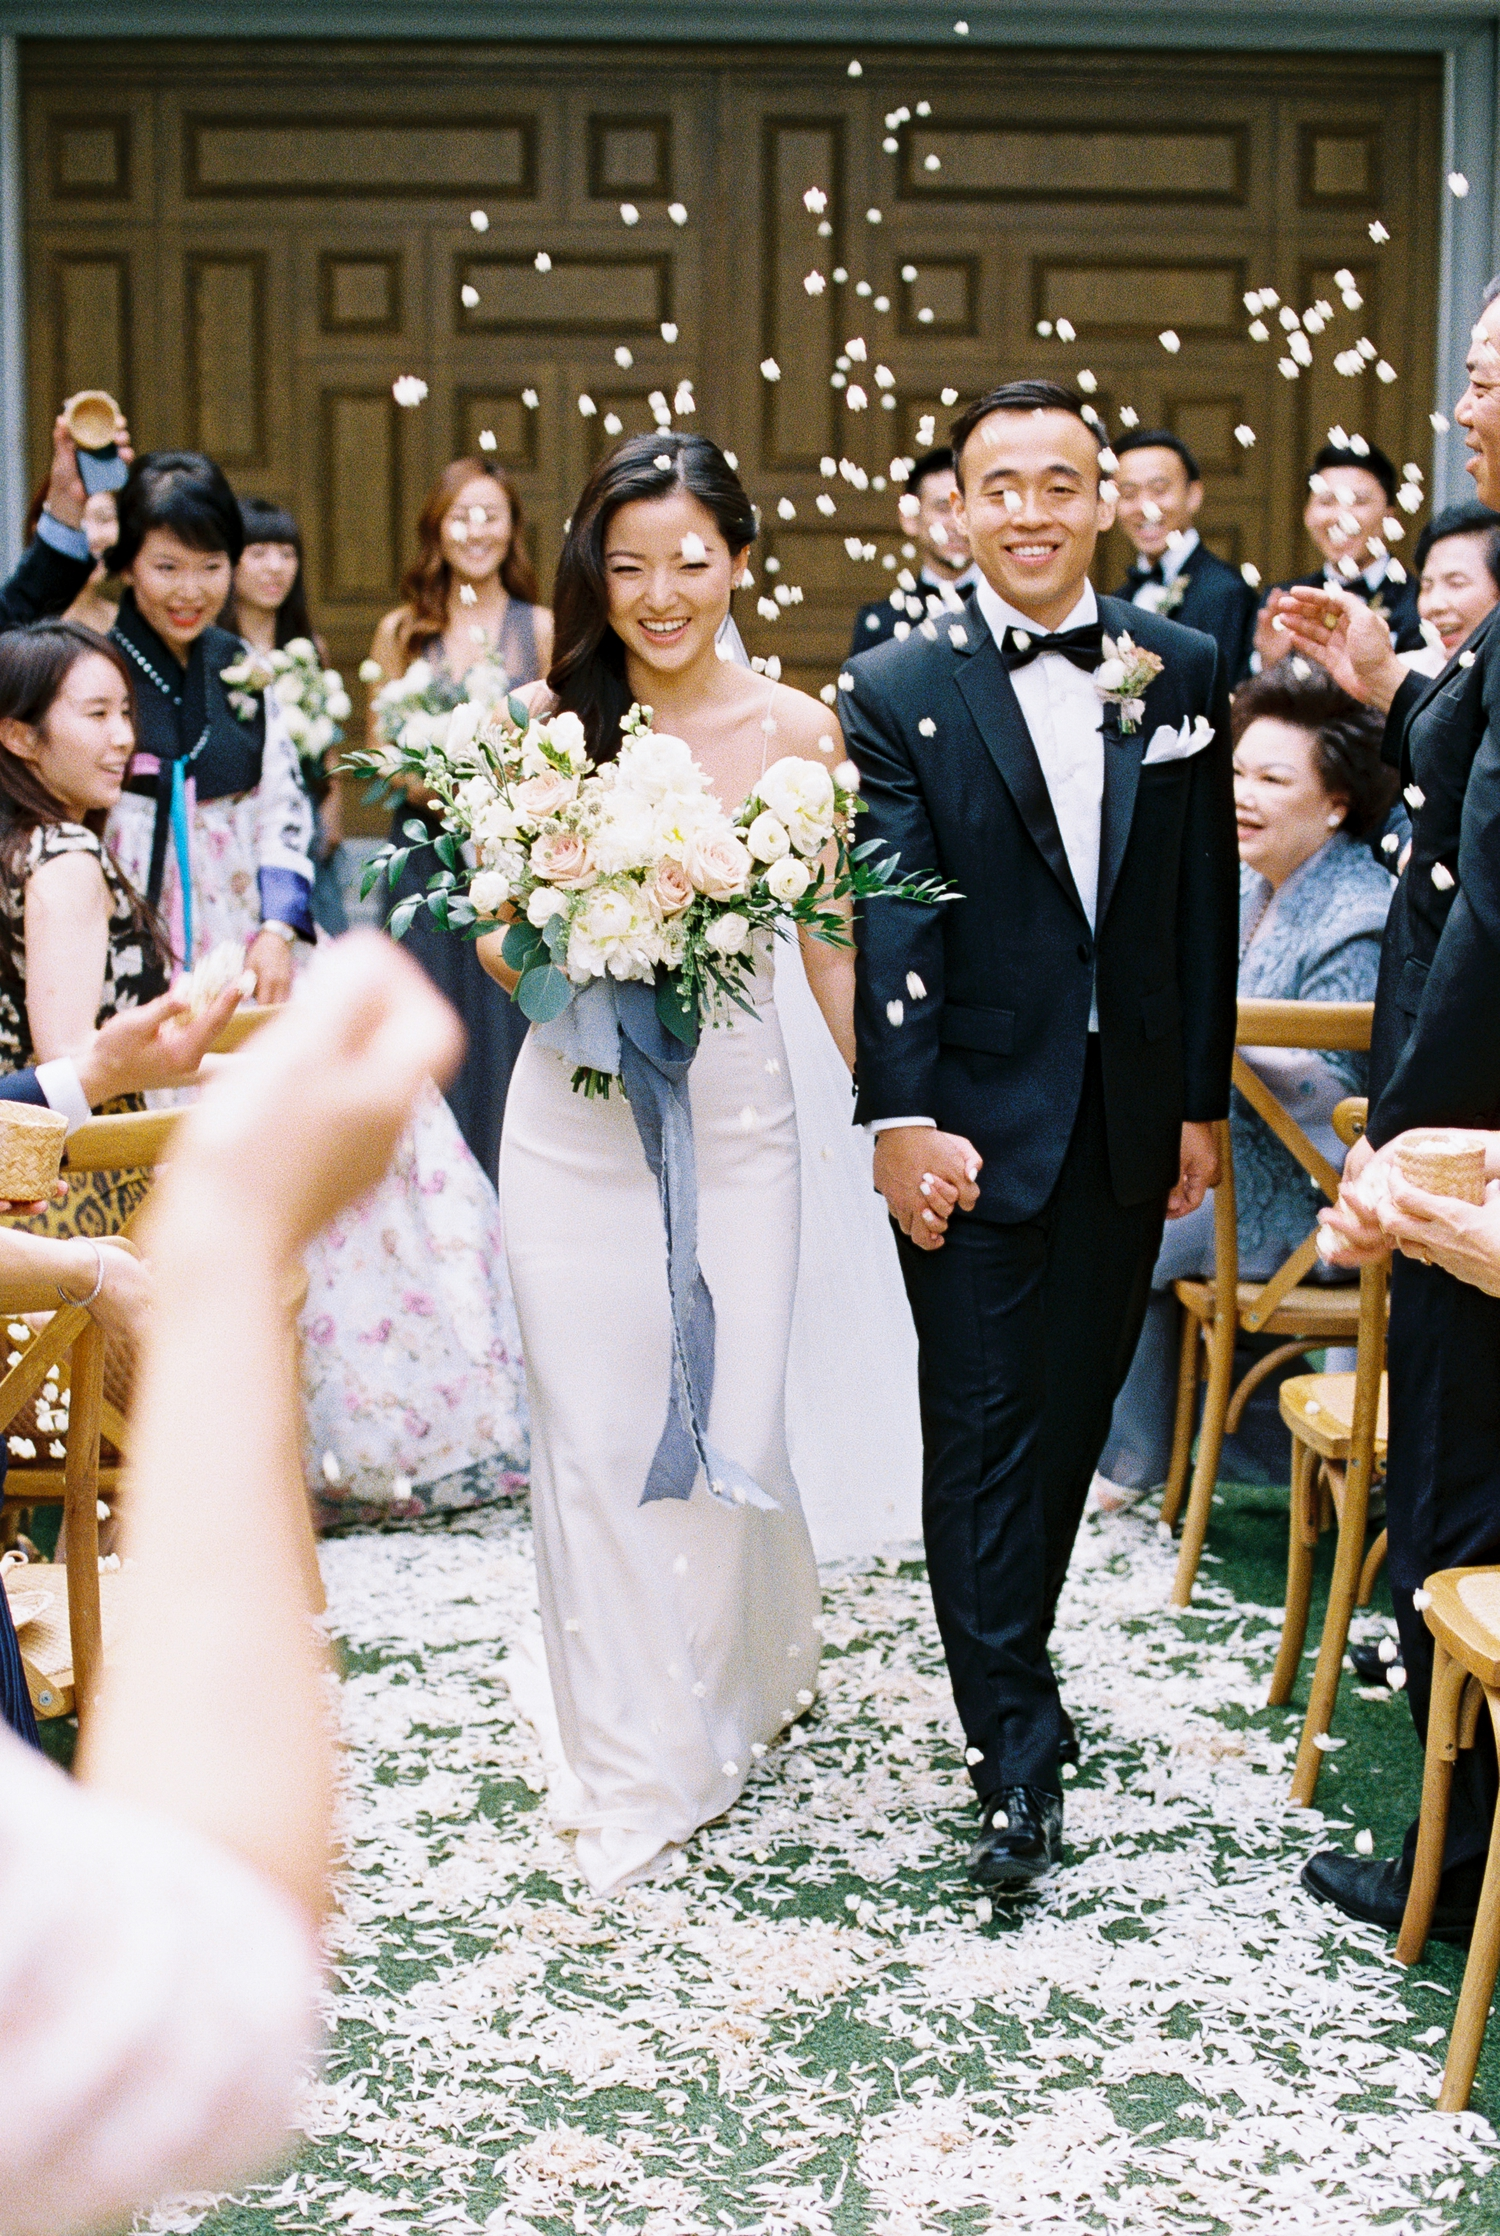 wedding recessional with flower petals